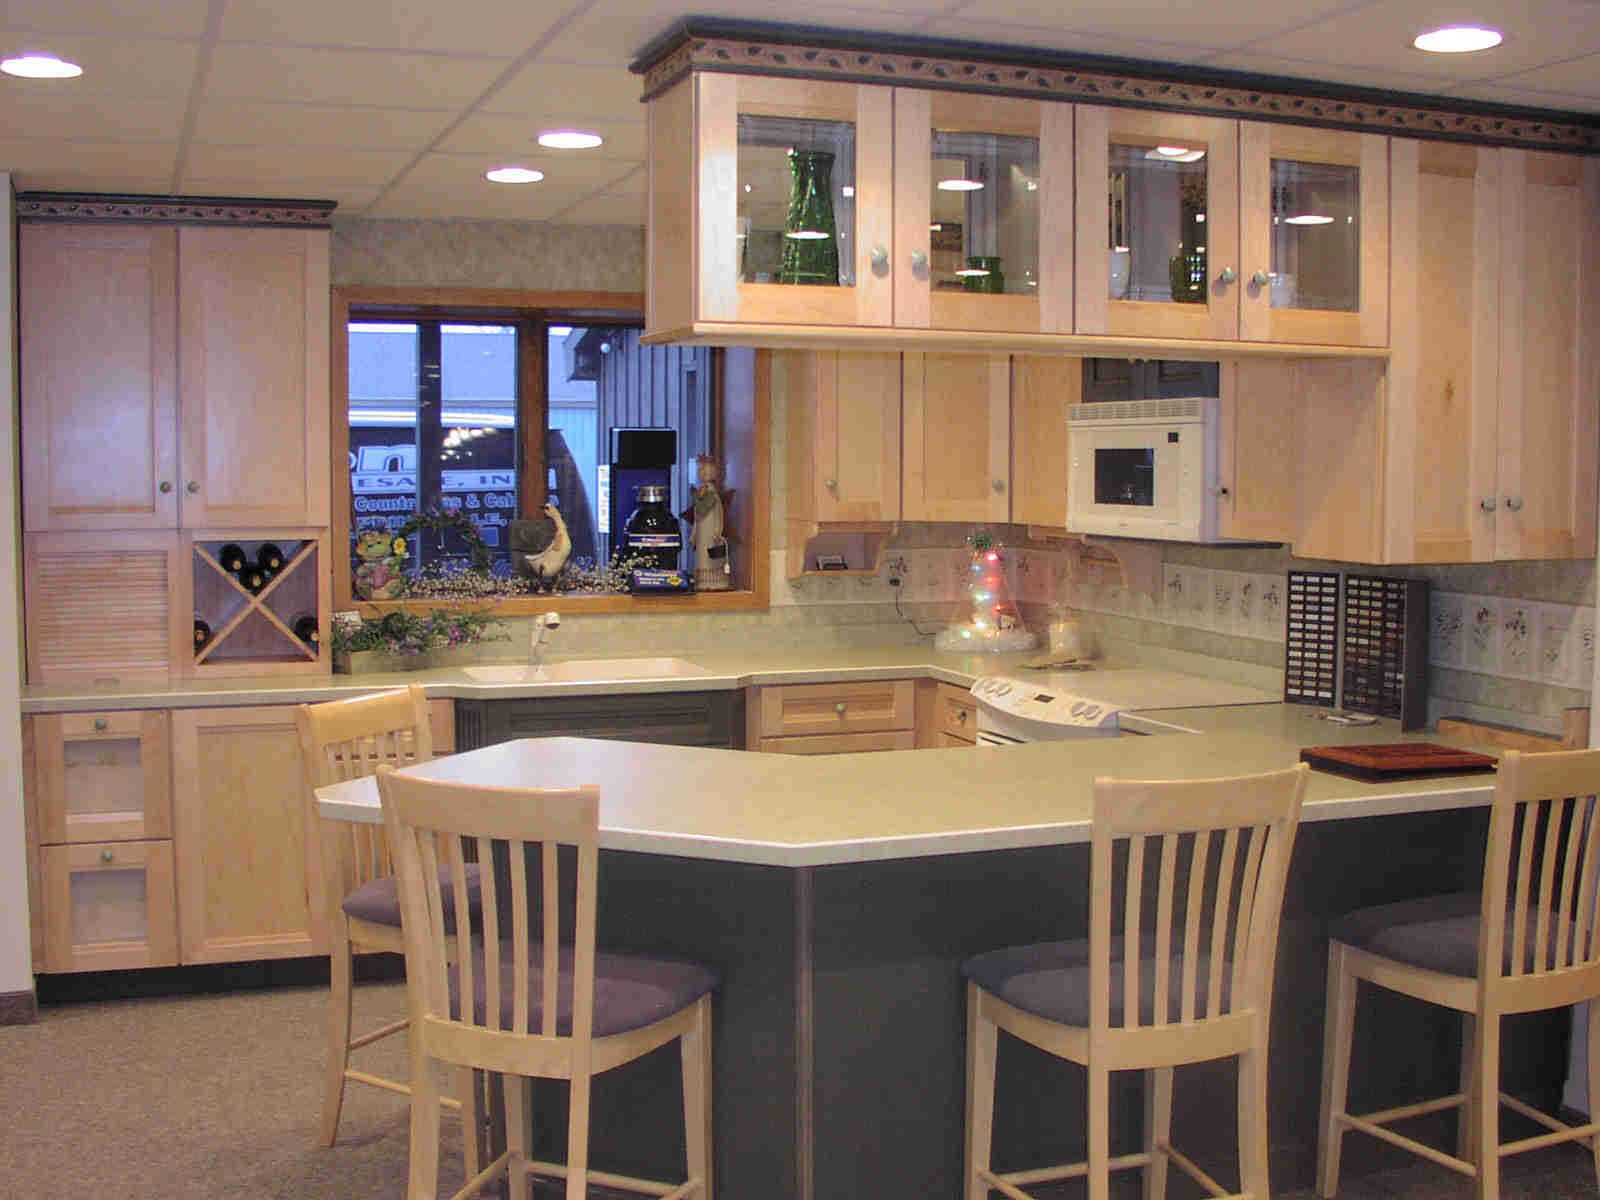 hanging kitchen cabinets from ceiling  kitchencabinet